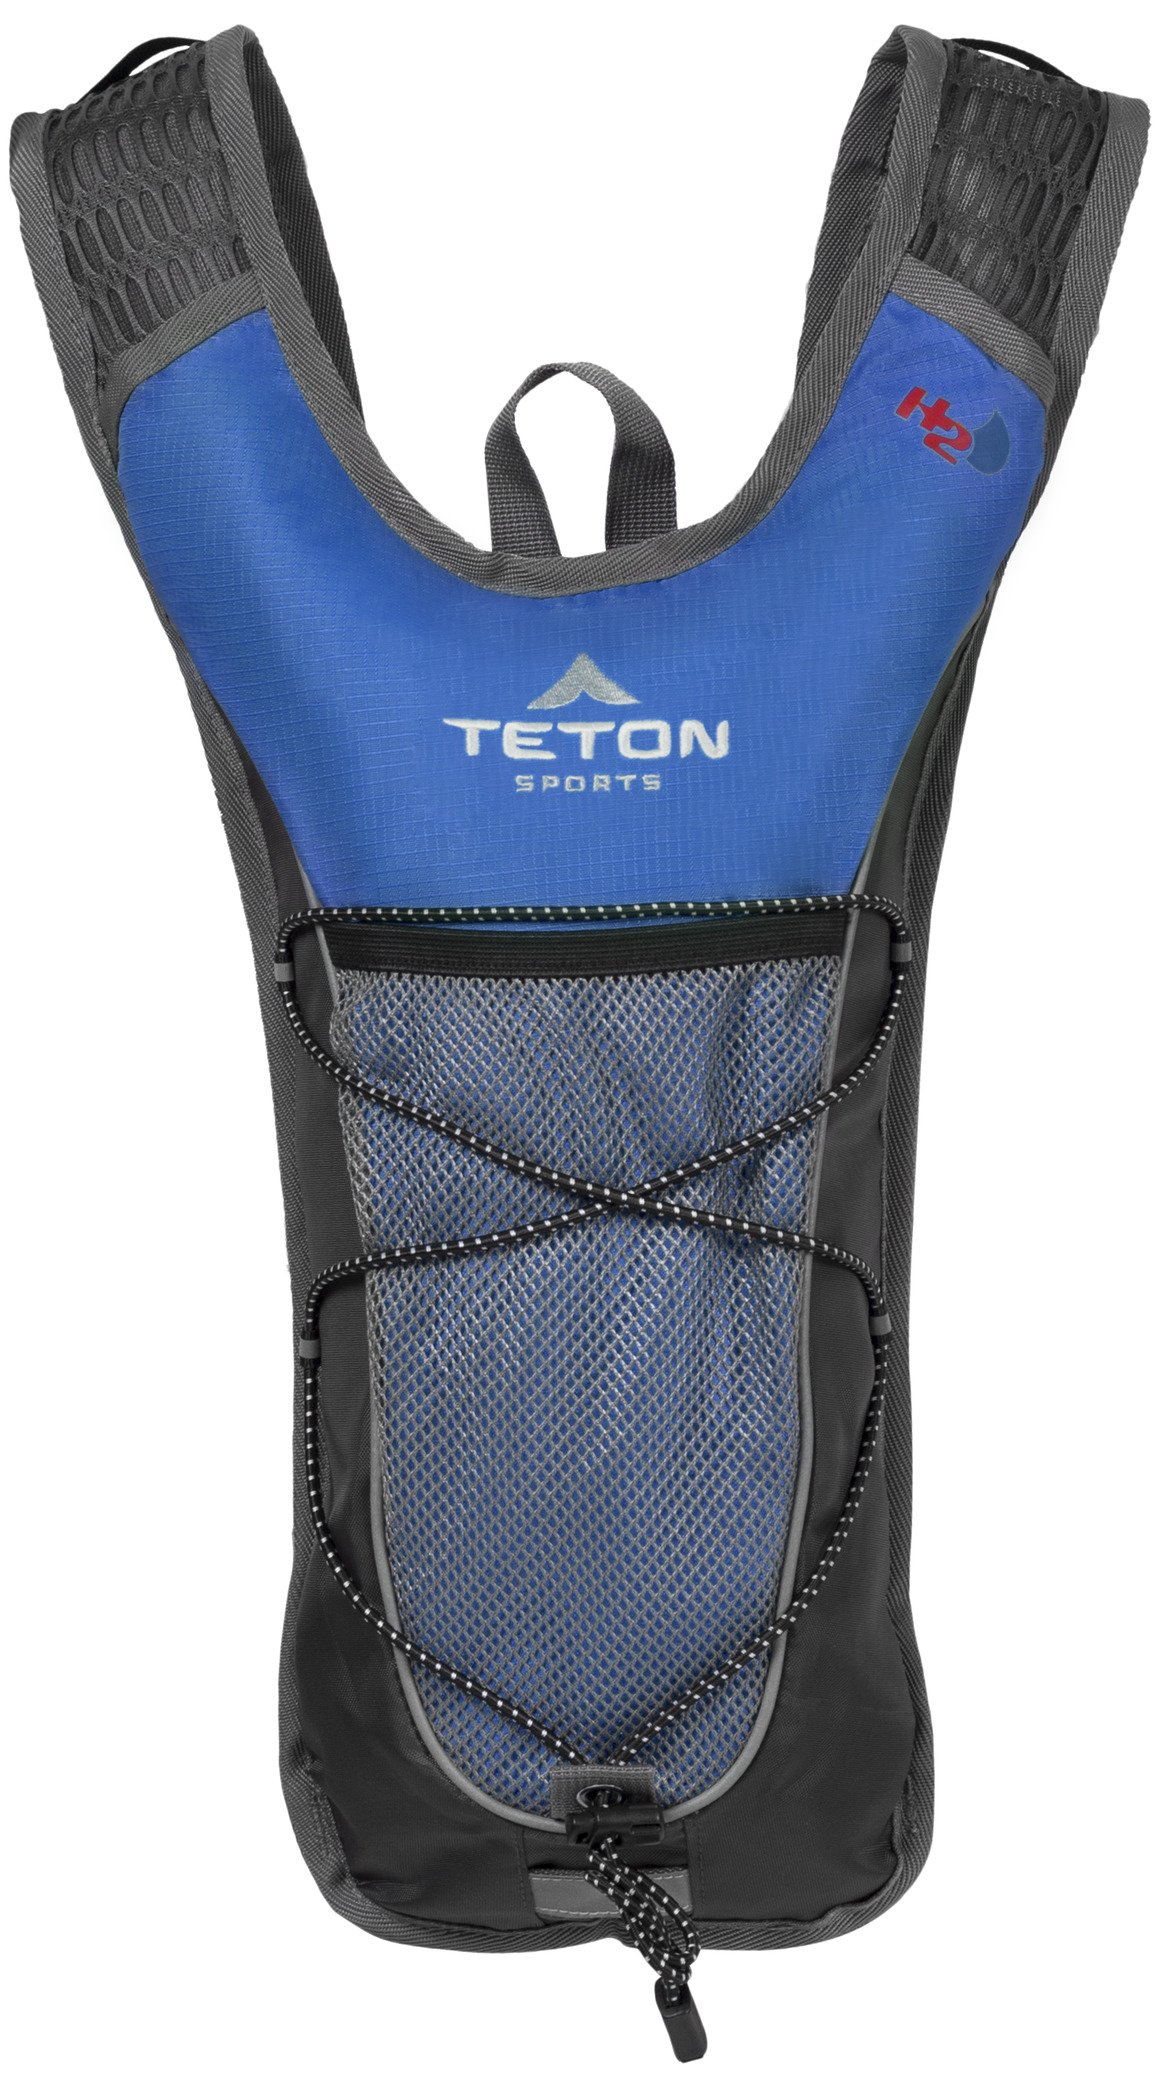 TETON Sports TrailRunner 2.0 Hydration Pack; Backpack for Hiking, Running and Cycling; Free 2-Liter Hydration Bladder; Blue by TETON Sports